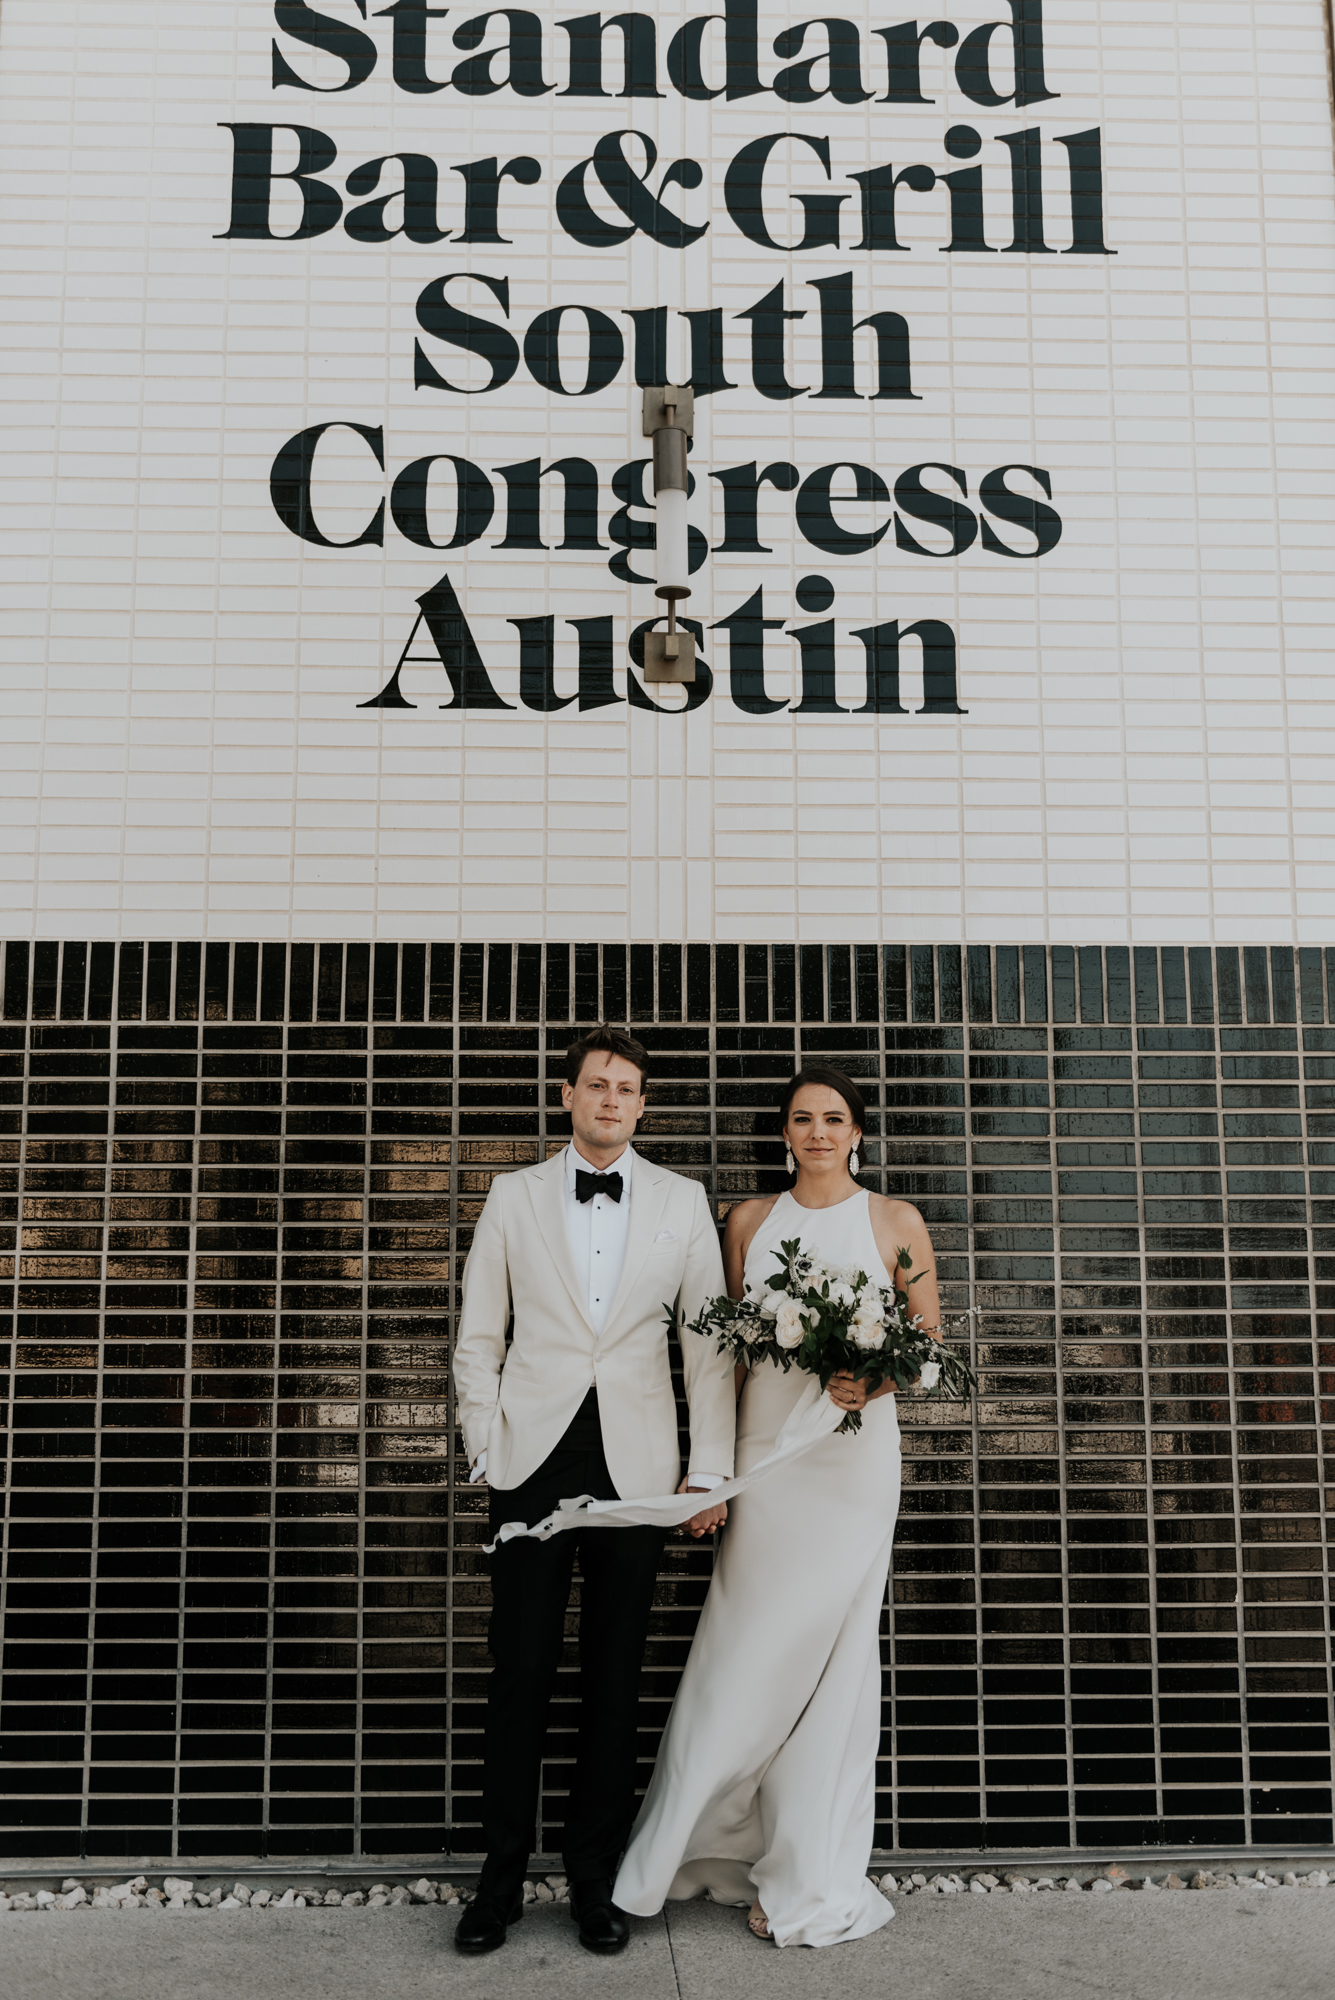 Bride and Groom Intimate Wedding day Portraits at South Congress Hotel in Austin, Texas